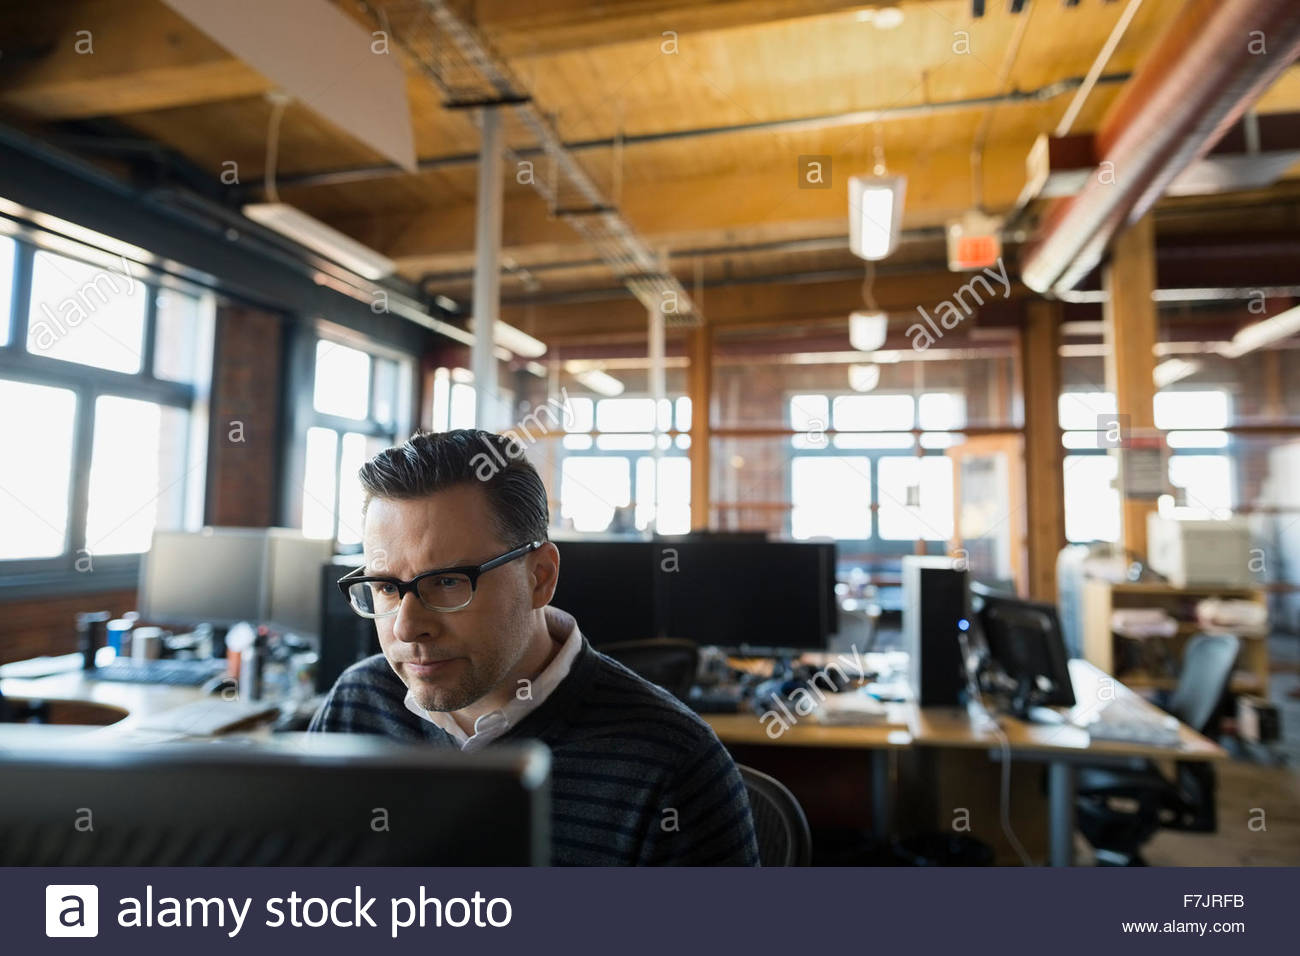 Serious businessman working at computer in office Photo Stock